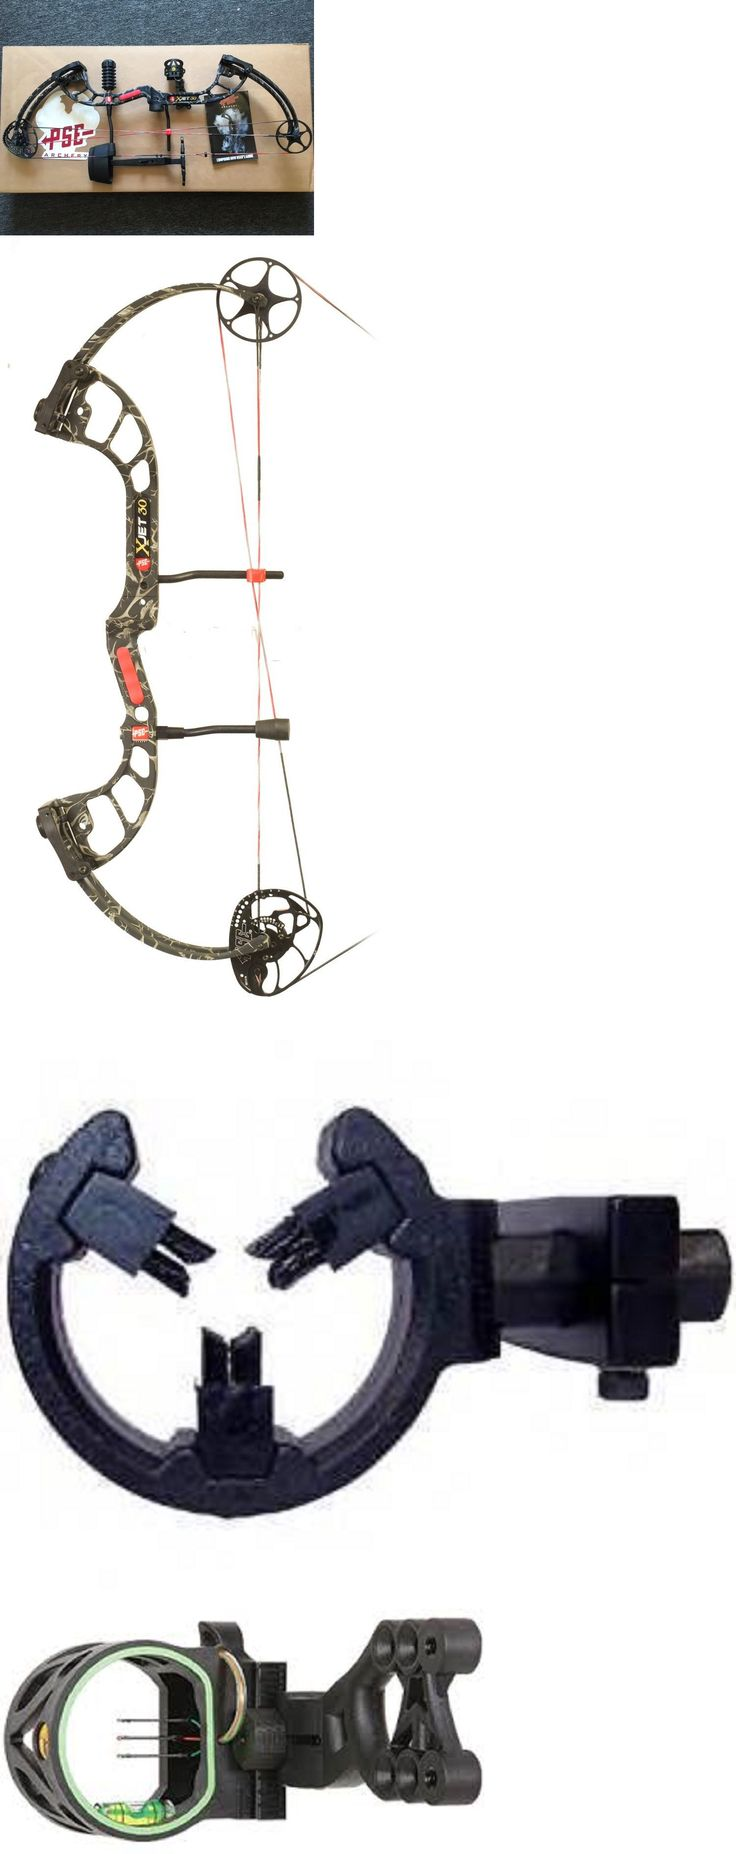 Compound 20838: Pse Bow Madness X-Jet 30 New 2015/16 45/60Lb Skullworks Package 53% Off Retail -> BUY IT NOW ONLY: $359.88 on eBay!